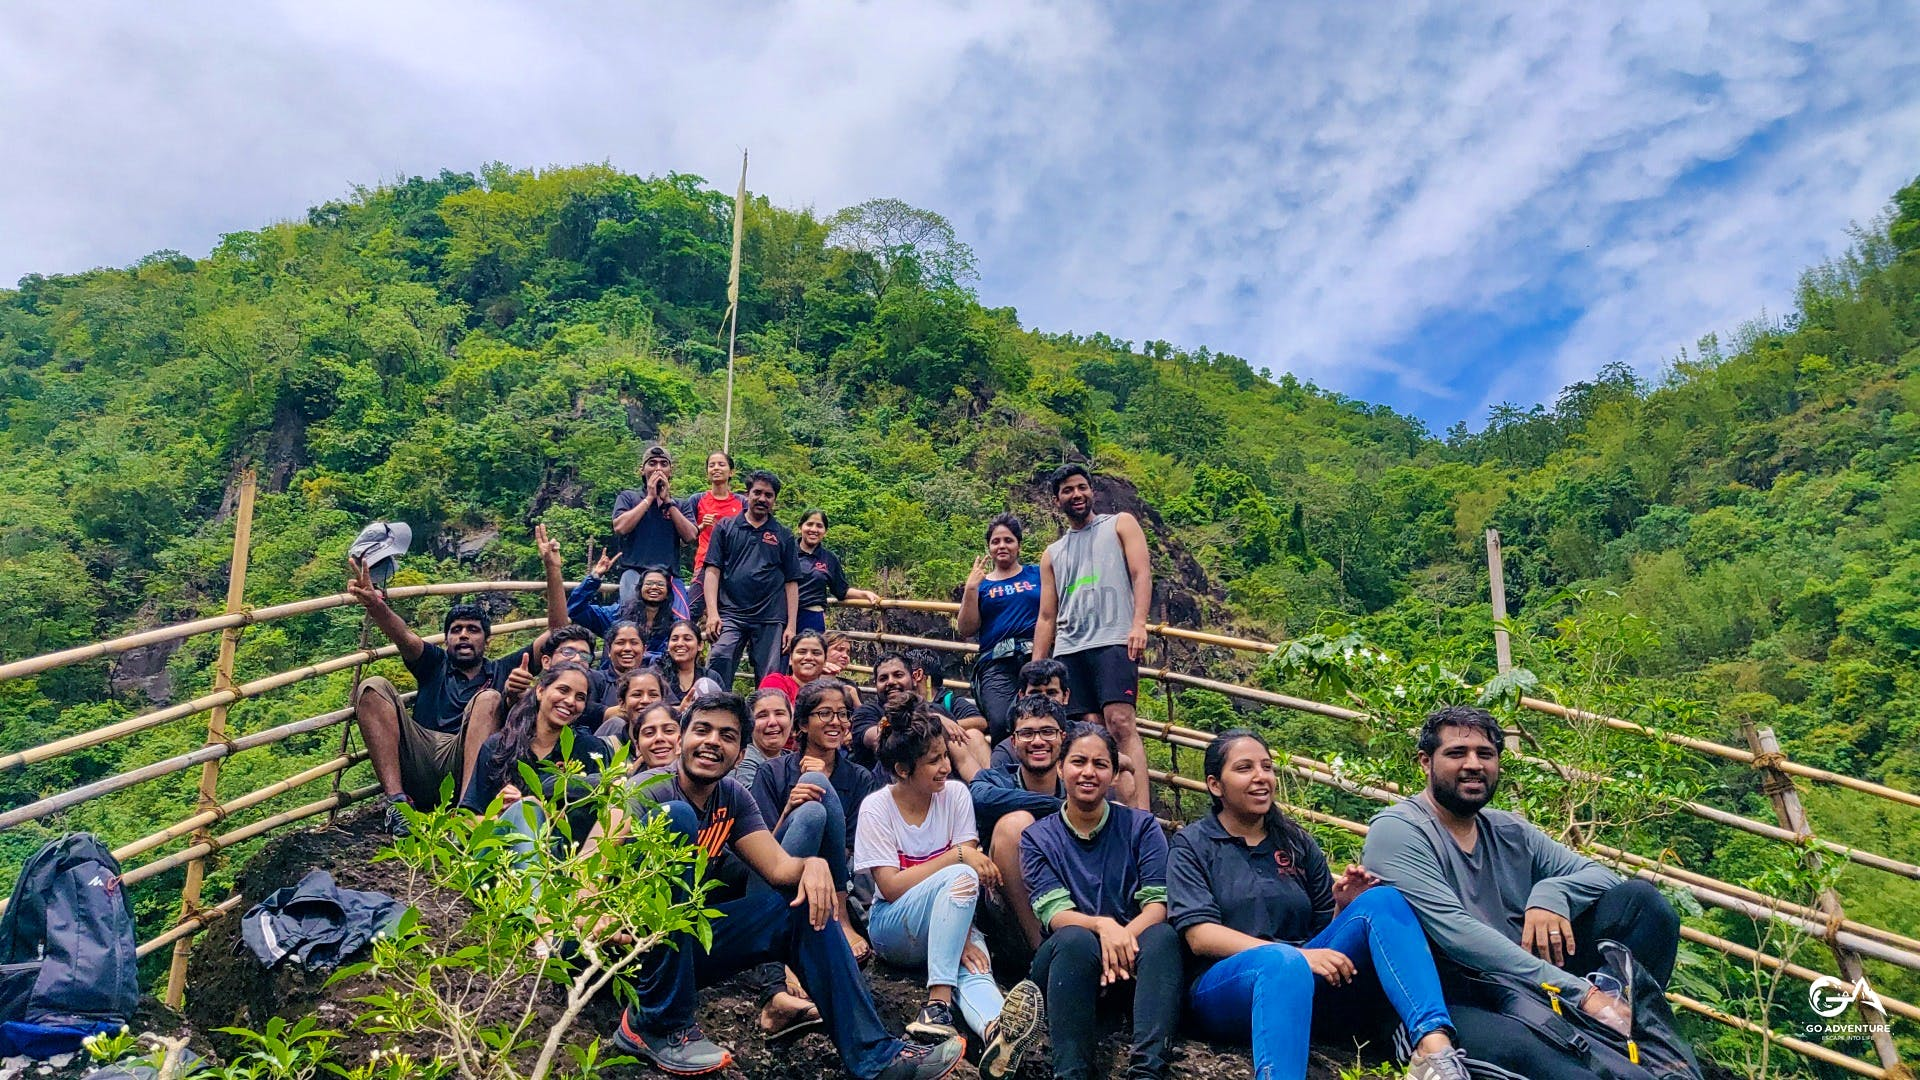 image - Hit Up These Trekking Clubs To Trek Across The Country